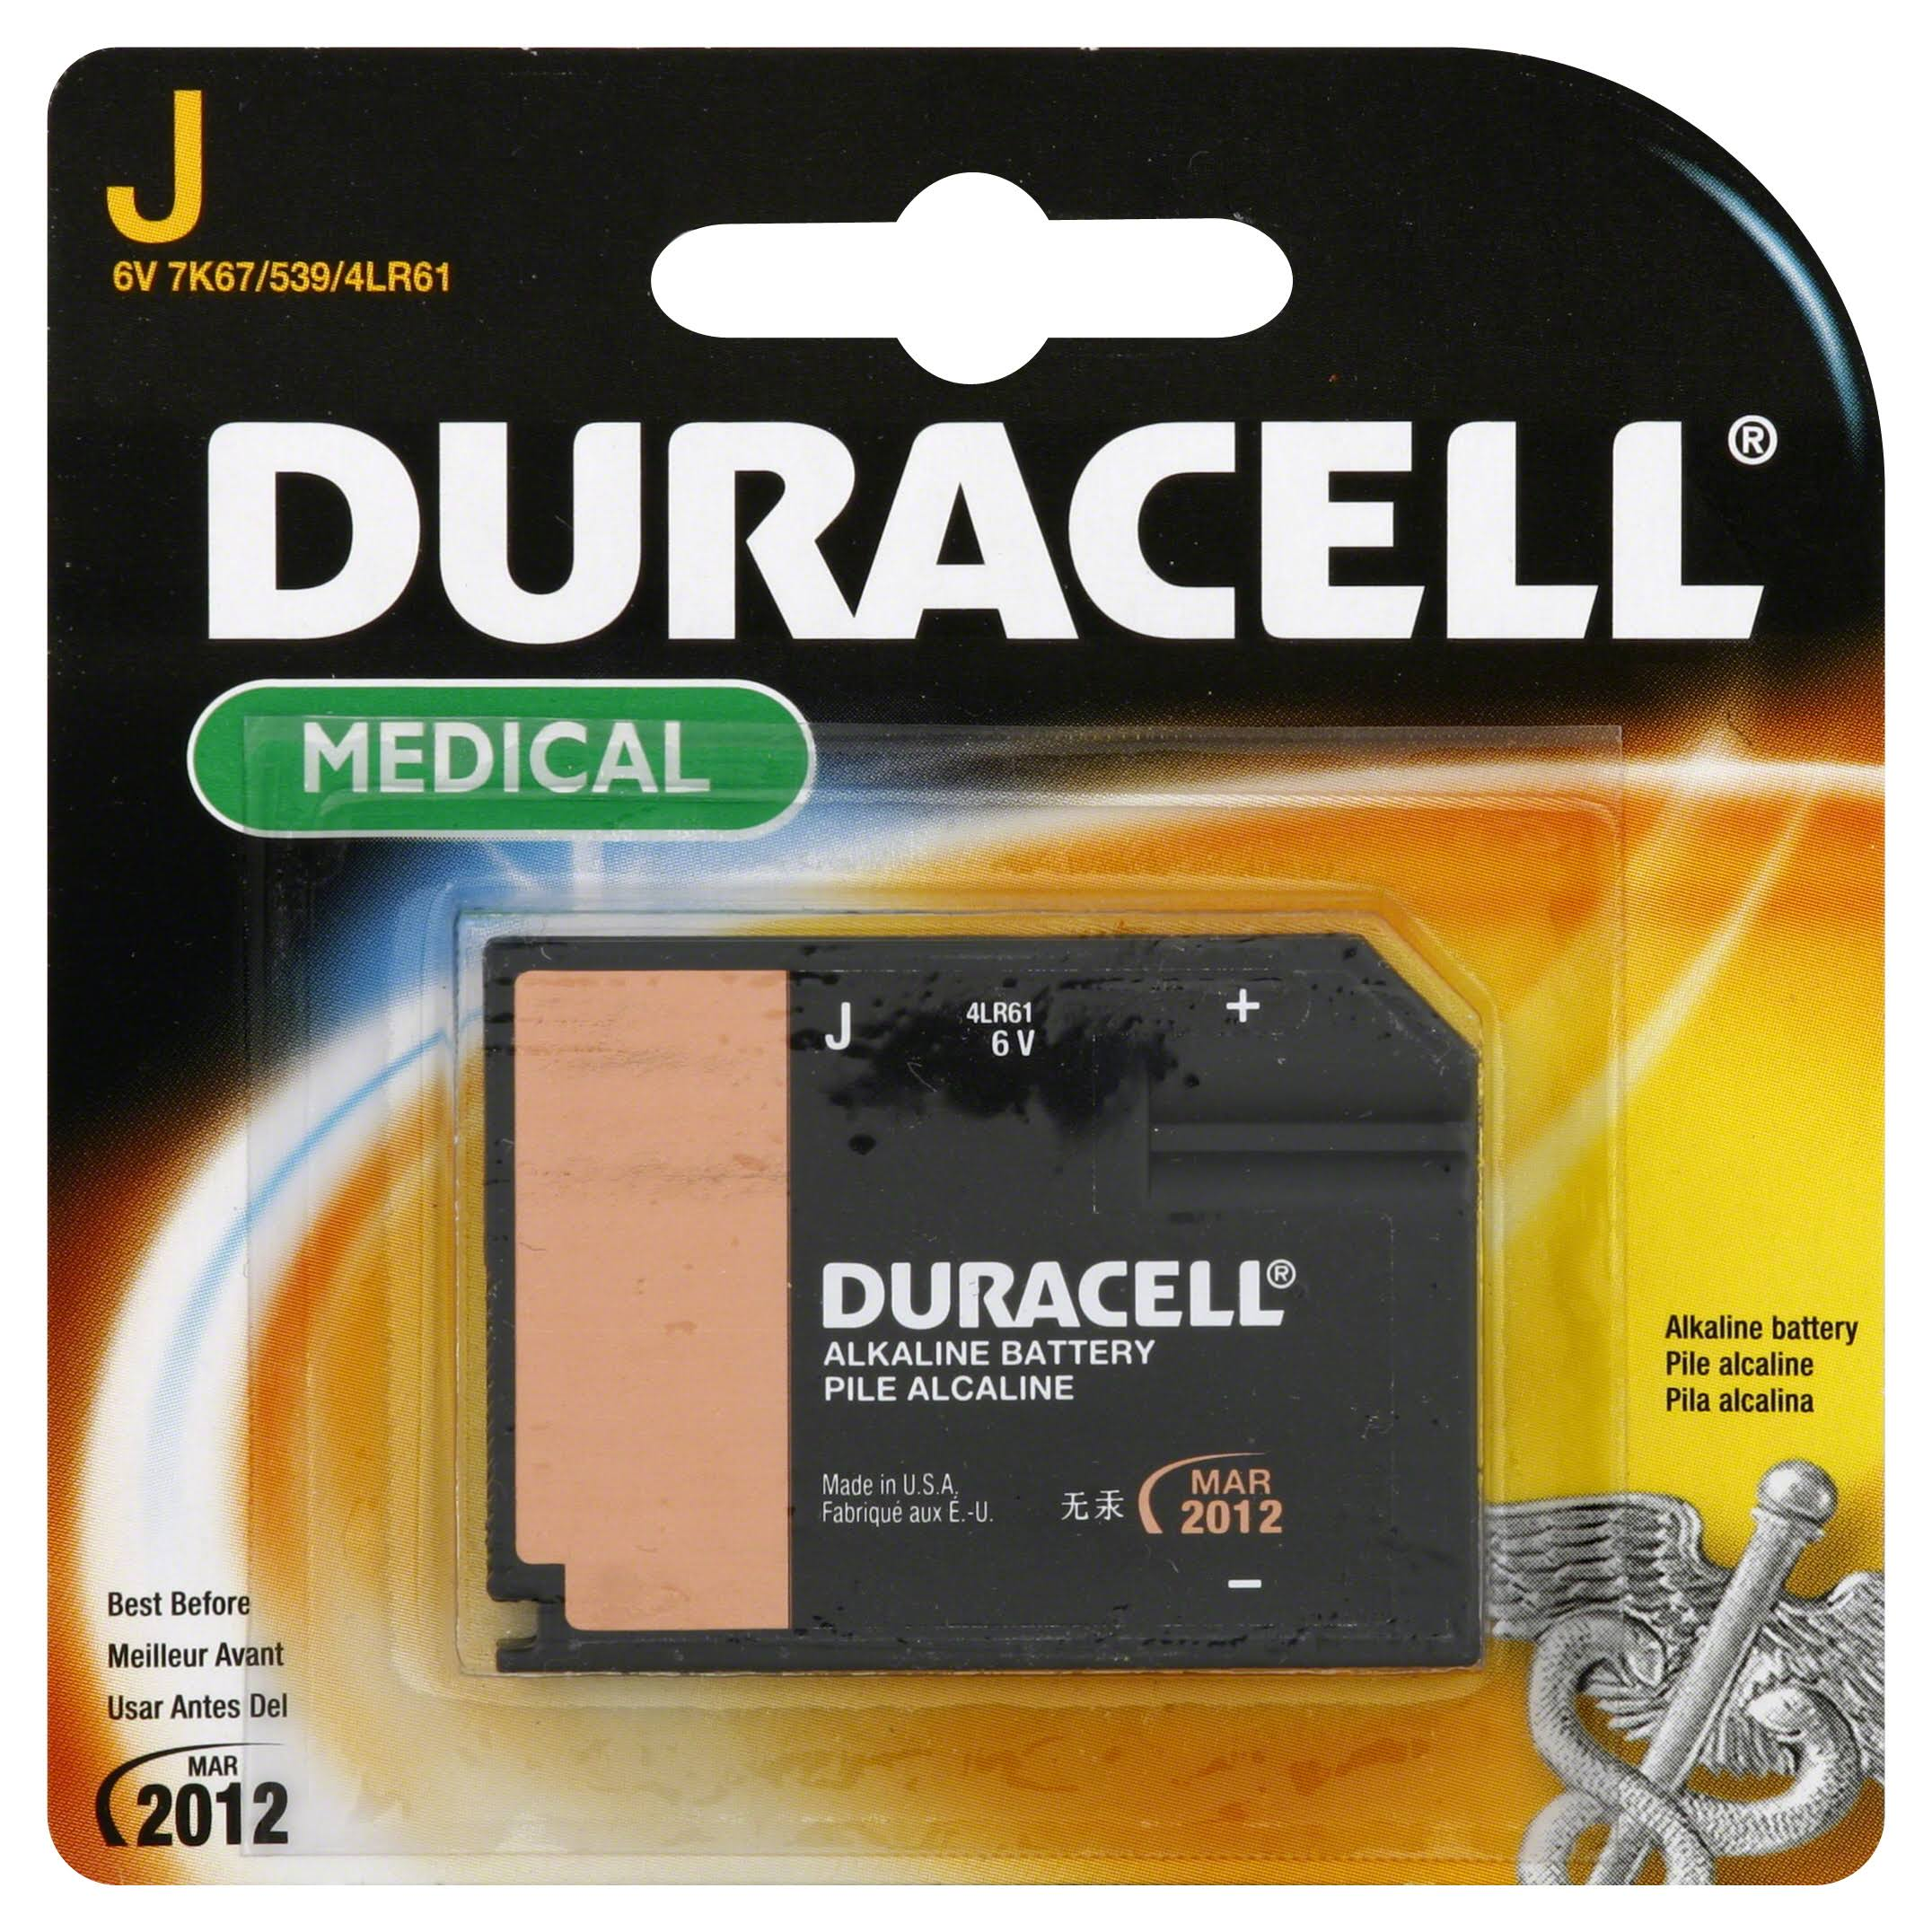 Duracell 7K67B Medical J Battery - 6v